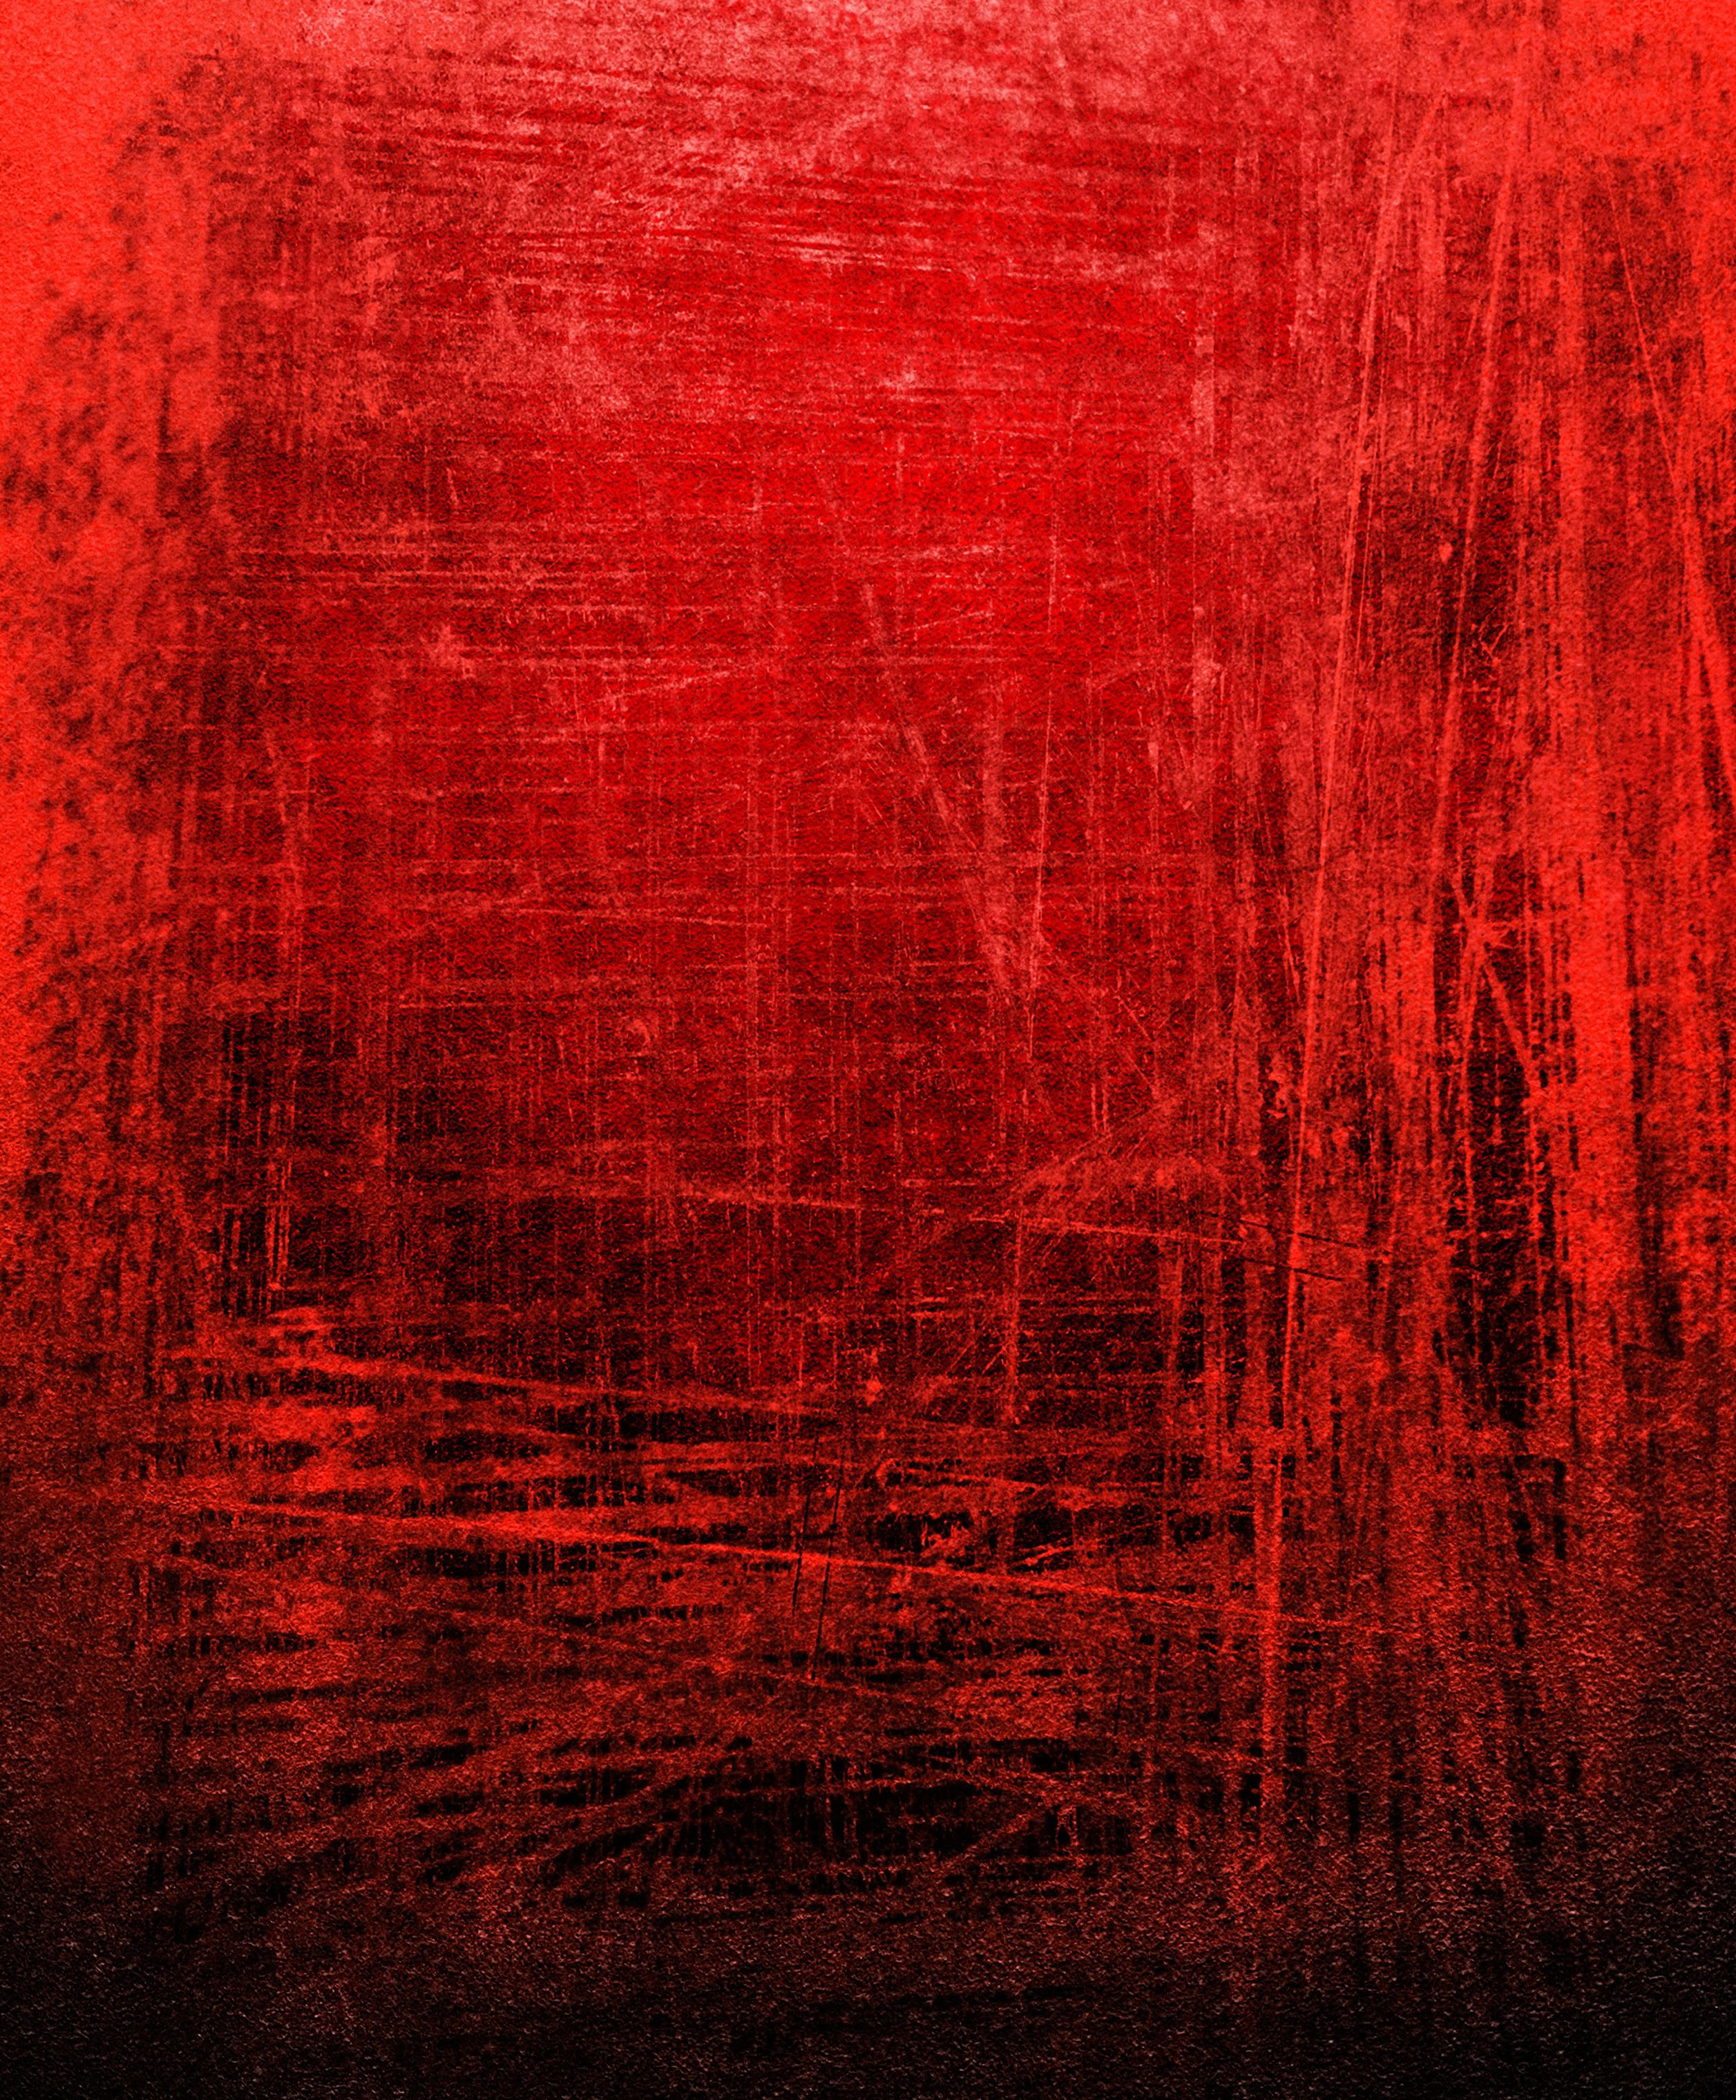 red paint texture paints background download photo red color